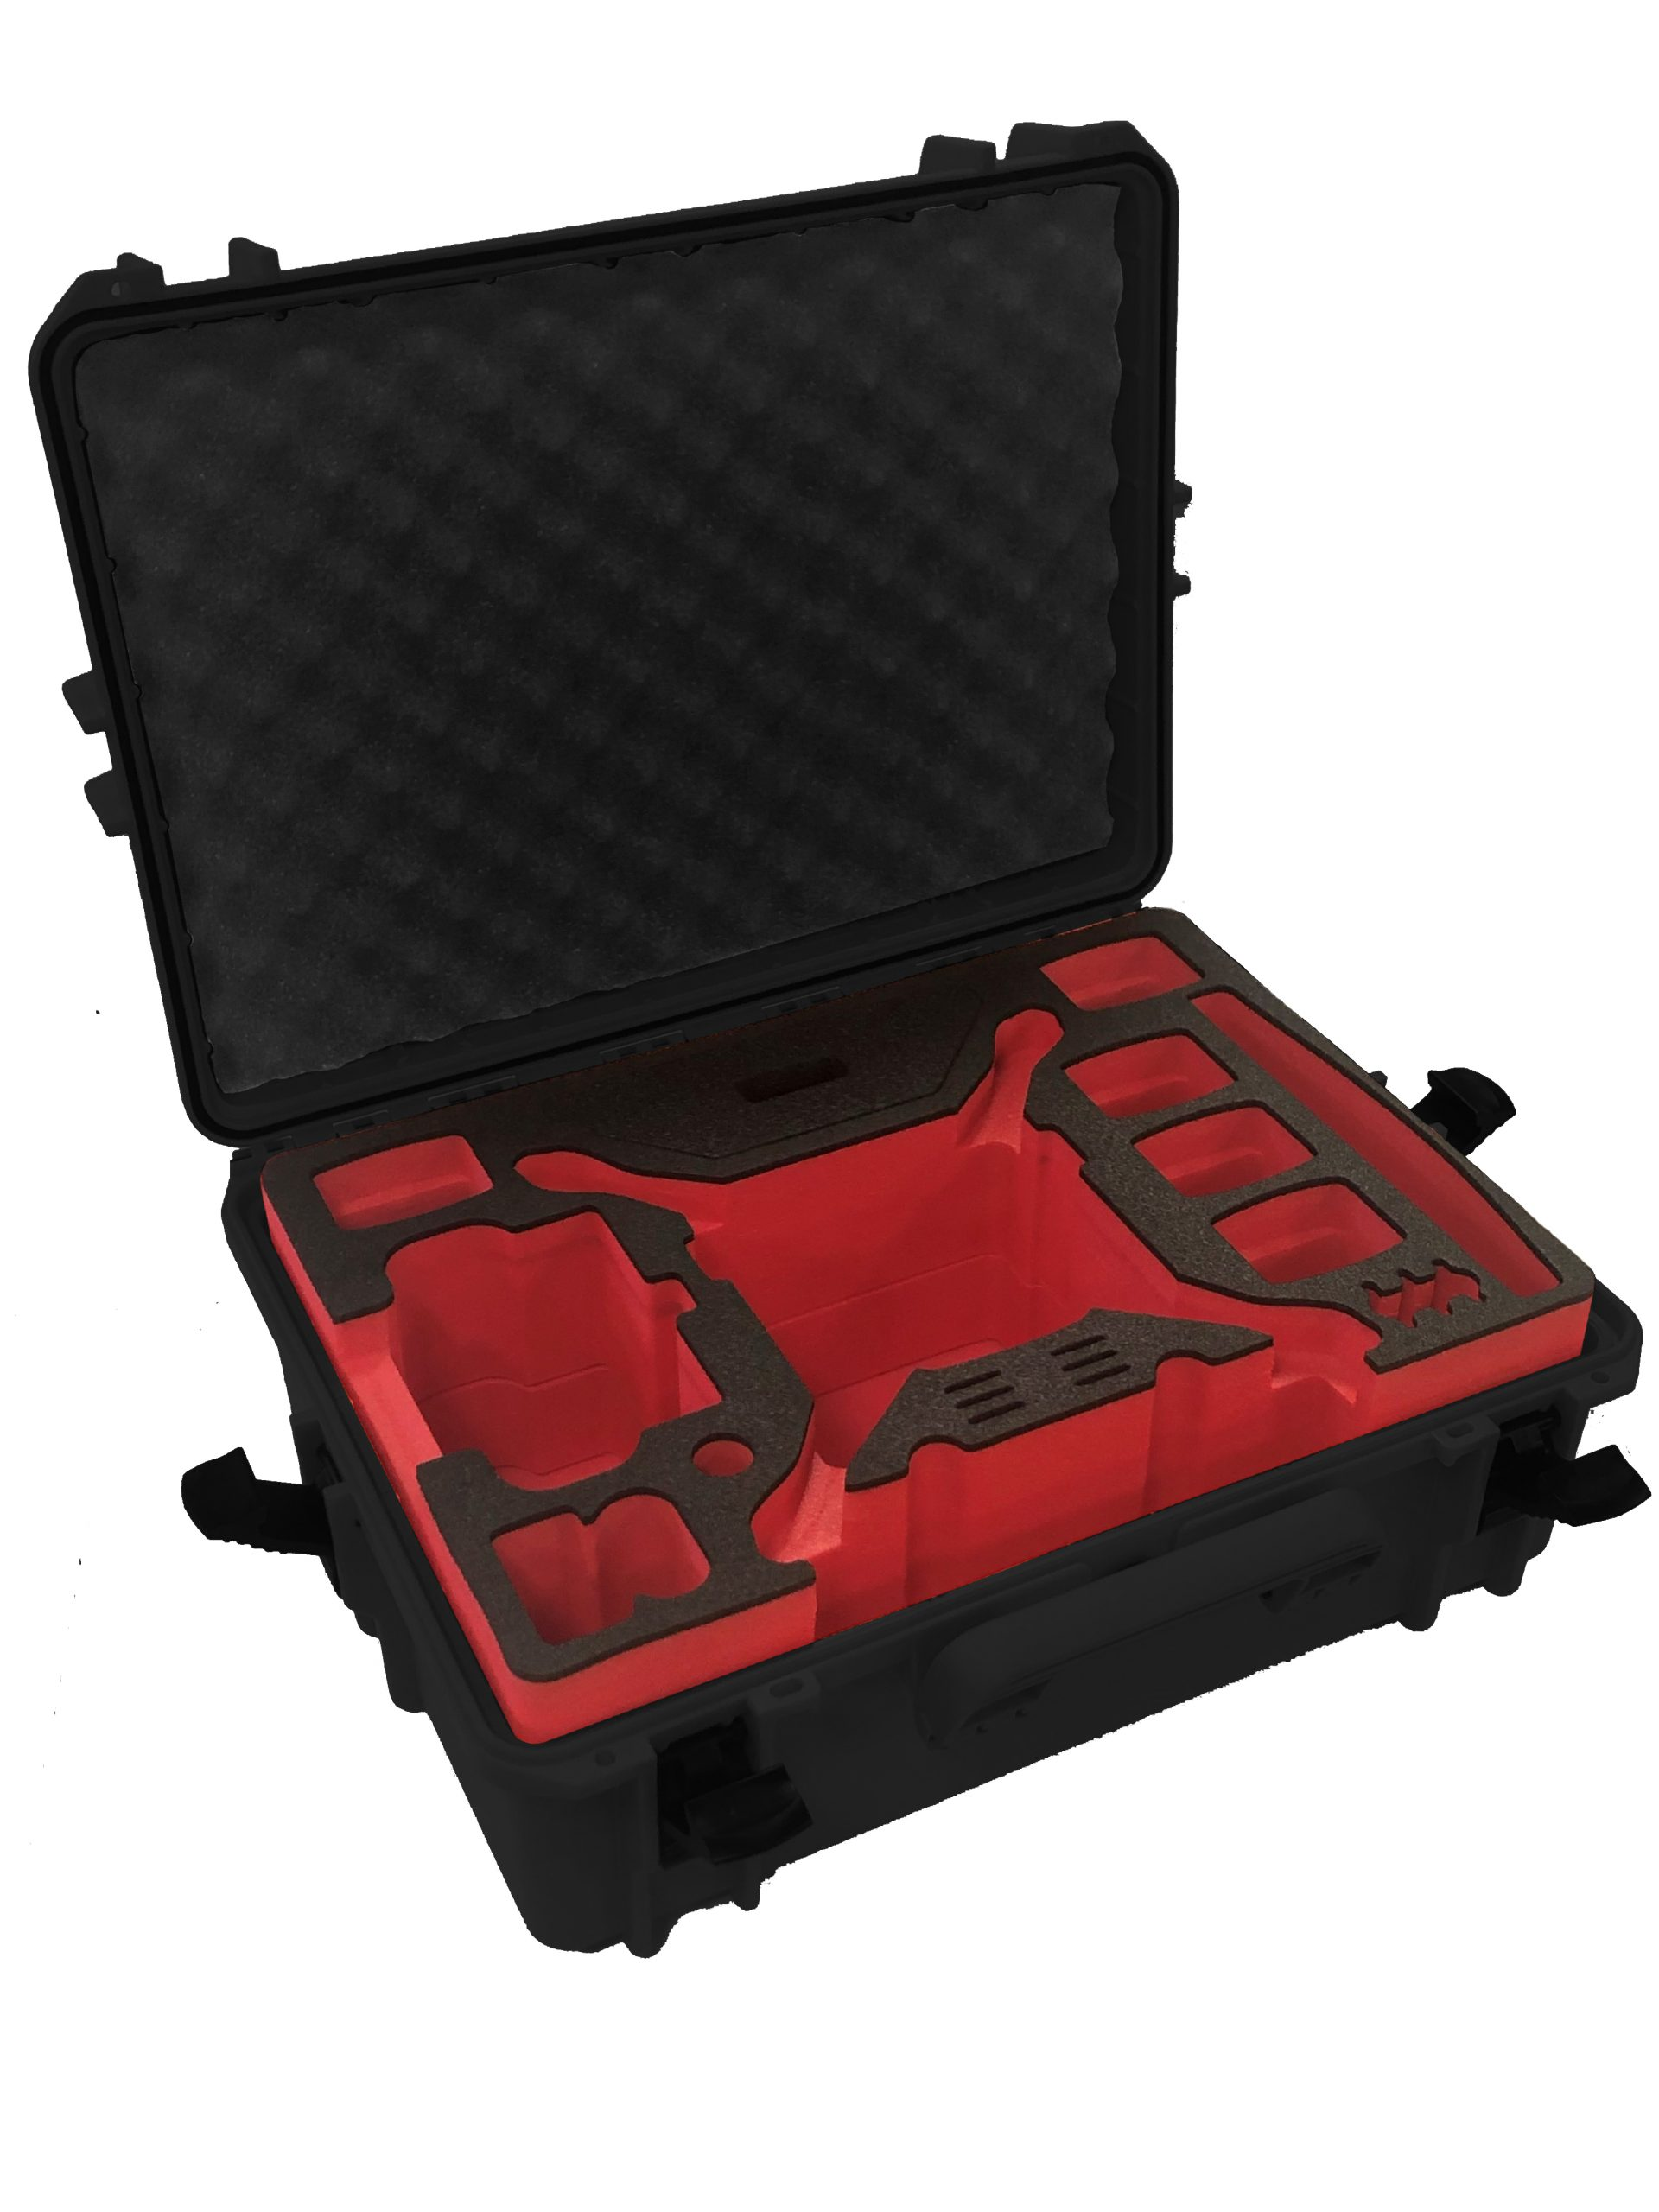 MAX505 IP67 Rated Phantom 4 Drone Case